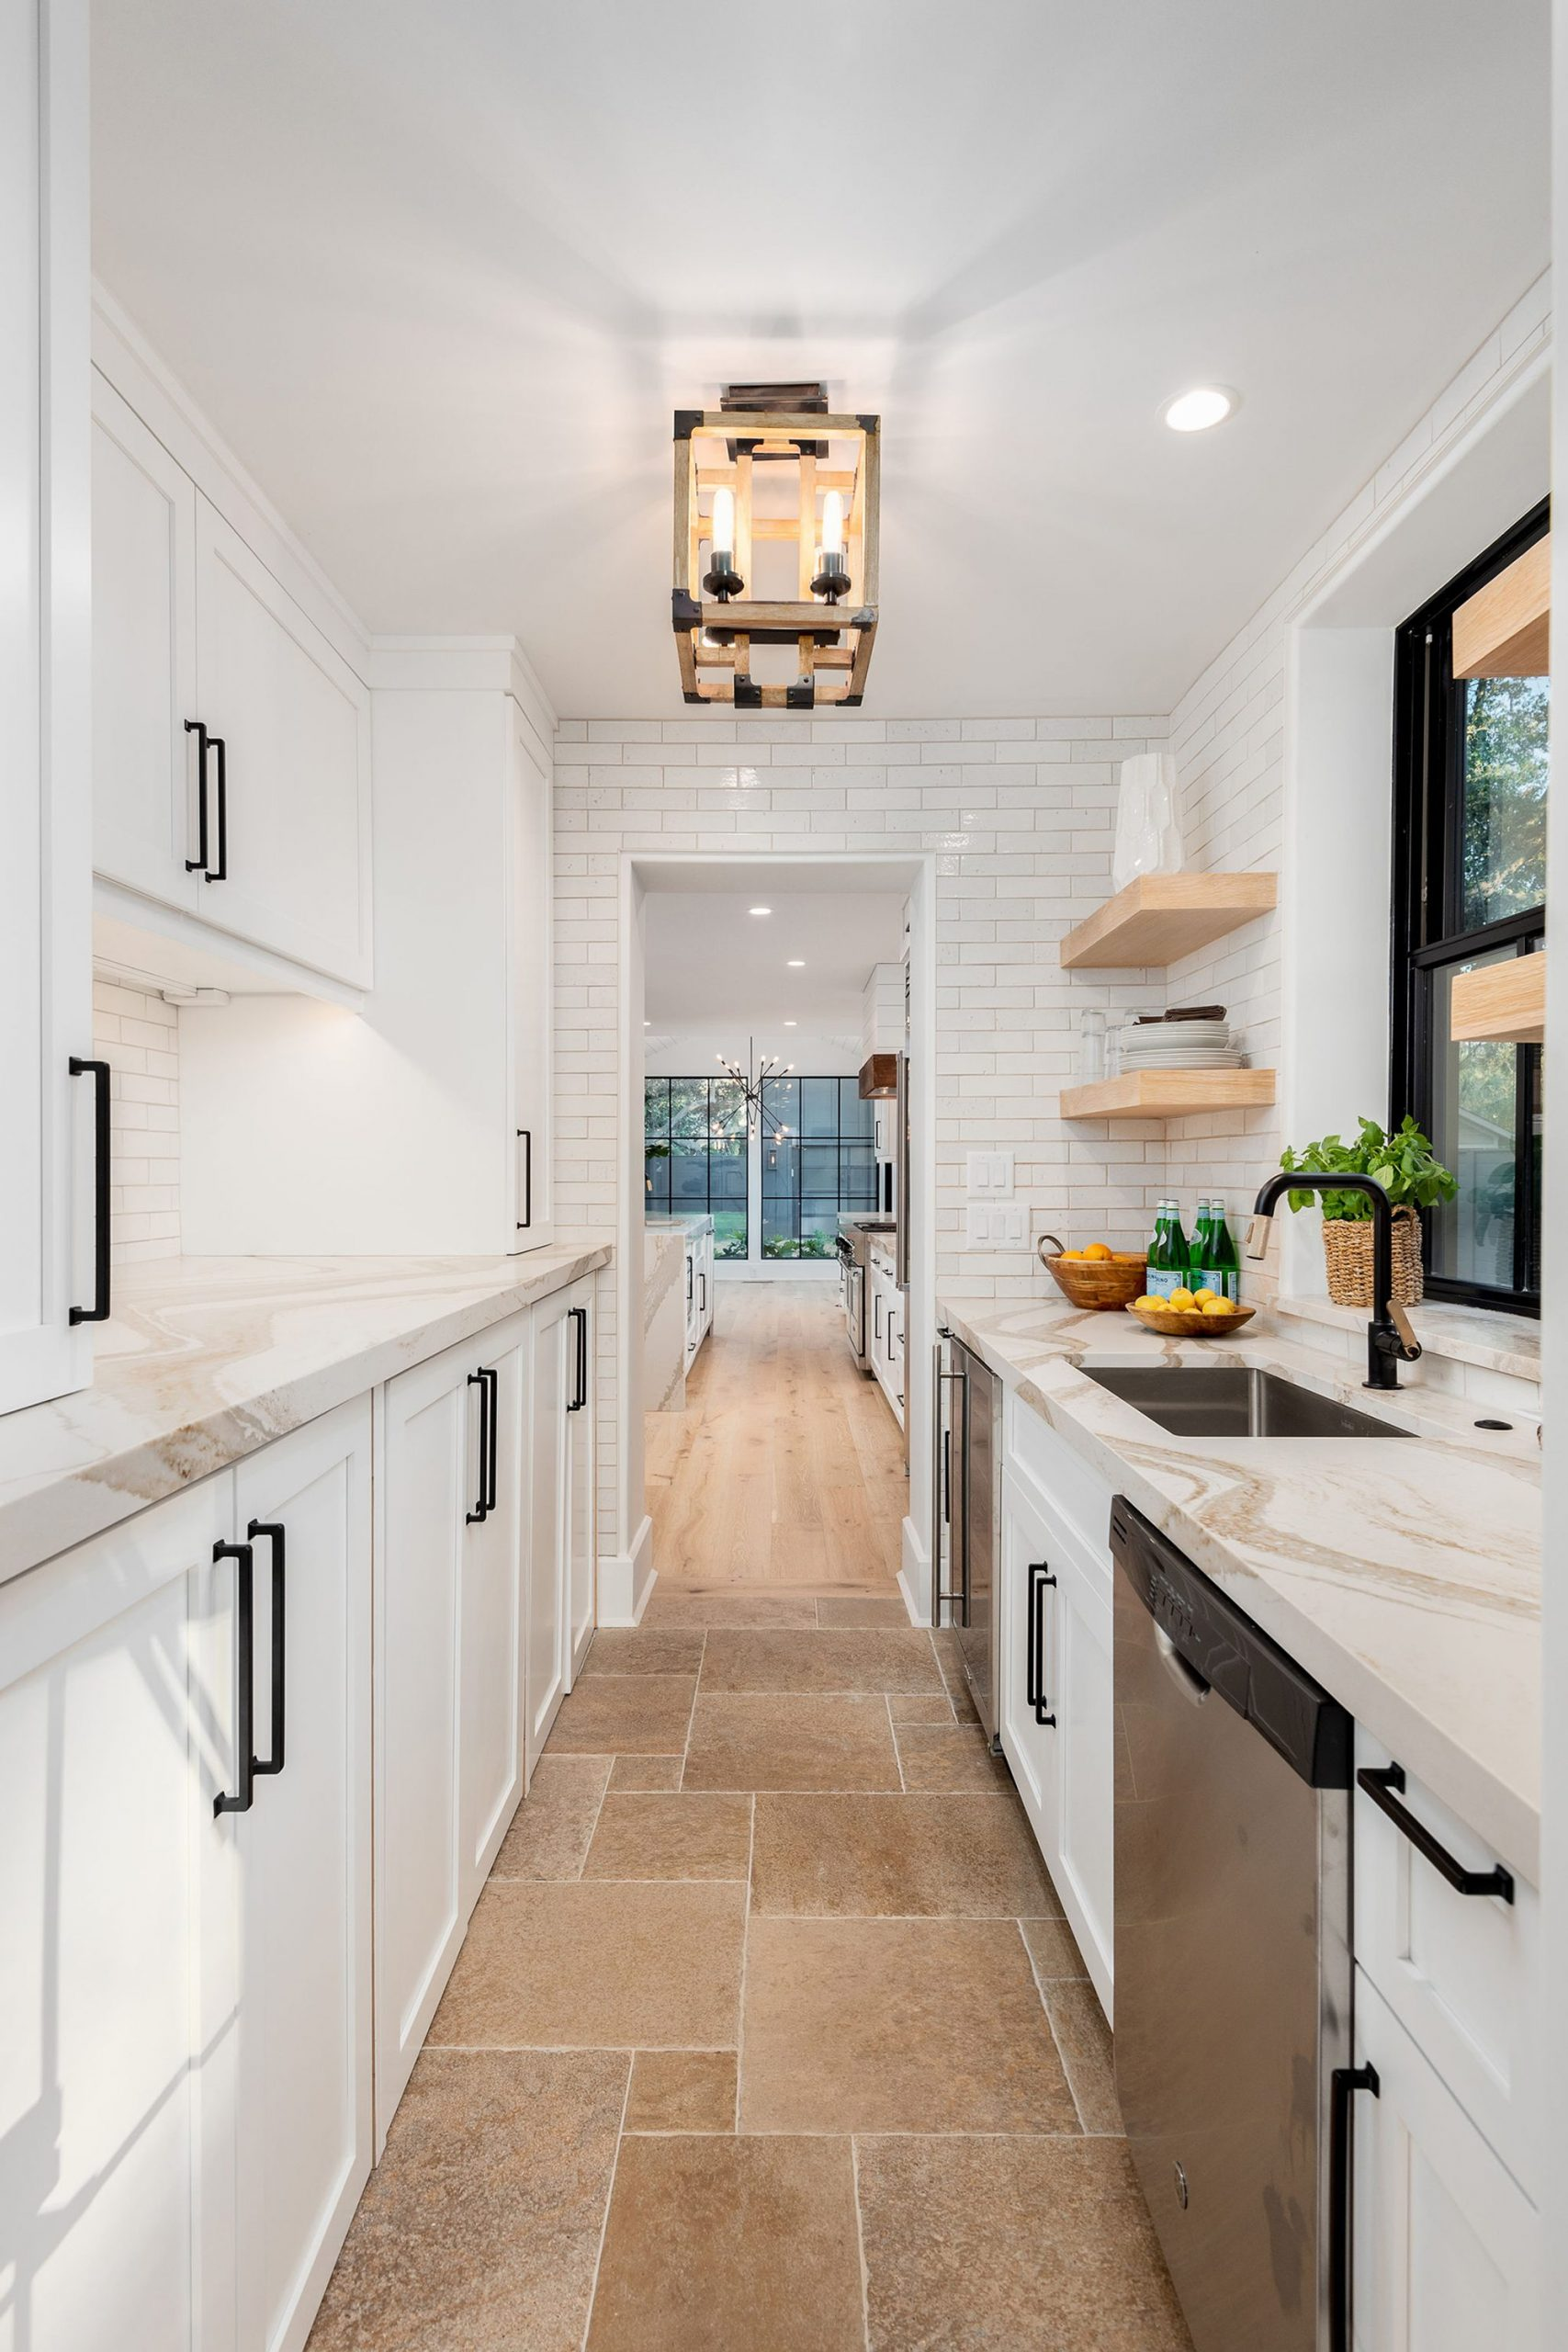 All white prep kitchen with white subway tiled walls.